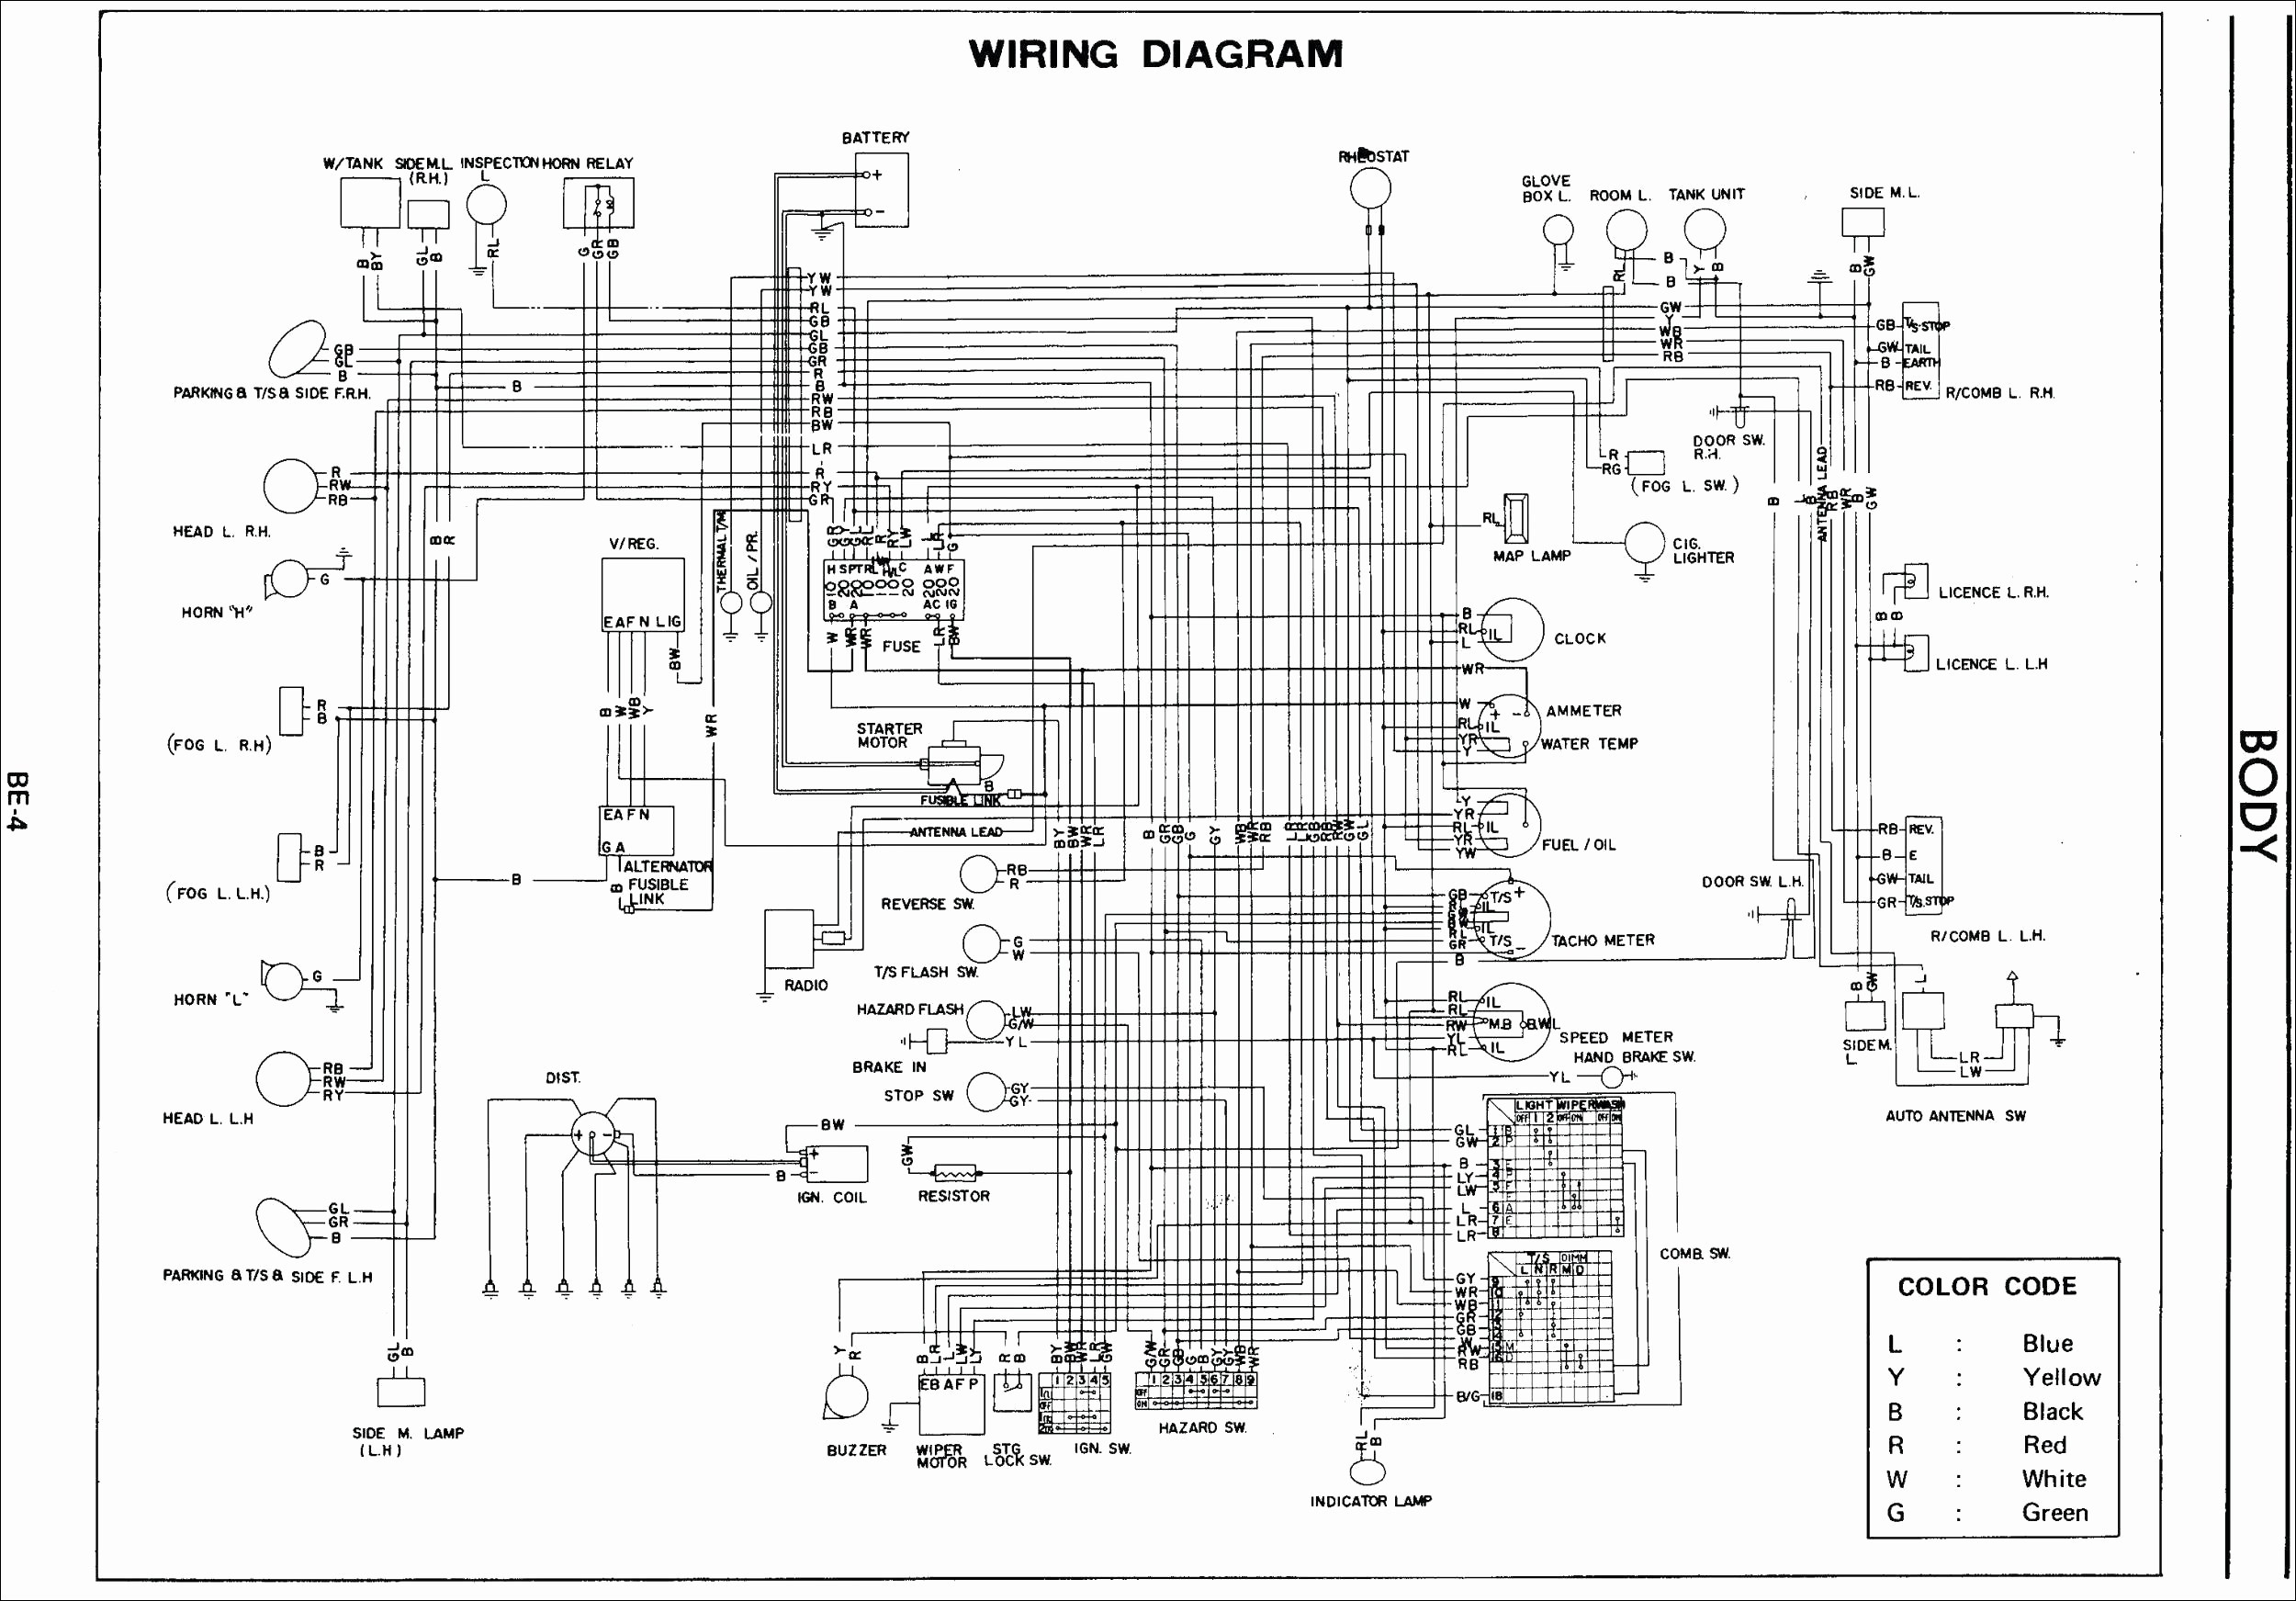 2010 Chrysler town and Country Engine Diagram Wiring Diagram for 2010 Chrysler town and Country Schematics Of 2010 Chrysler town and Country Engine Diagram